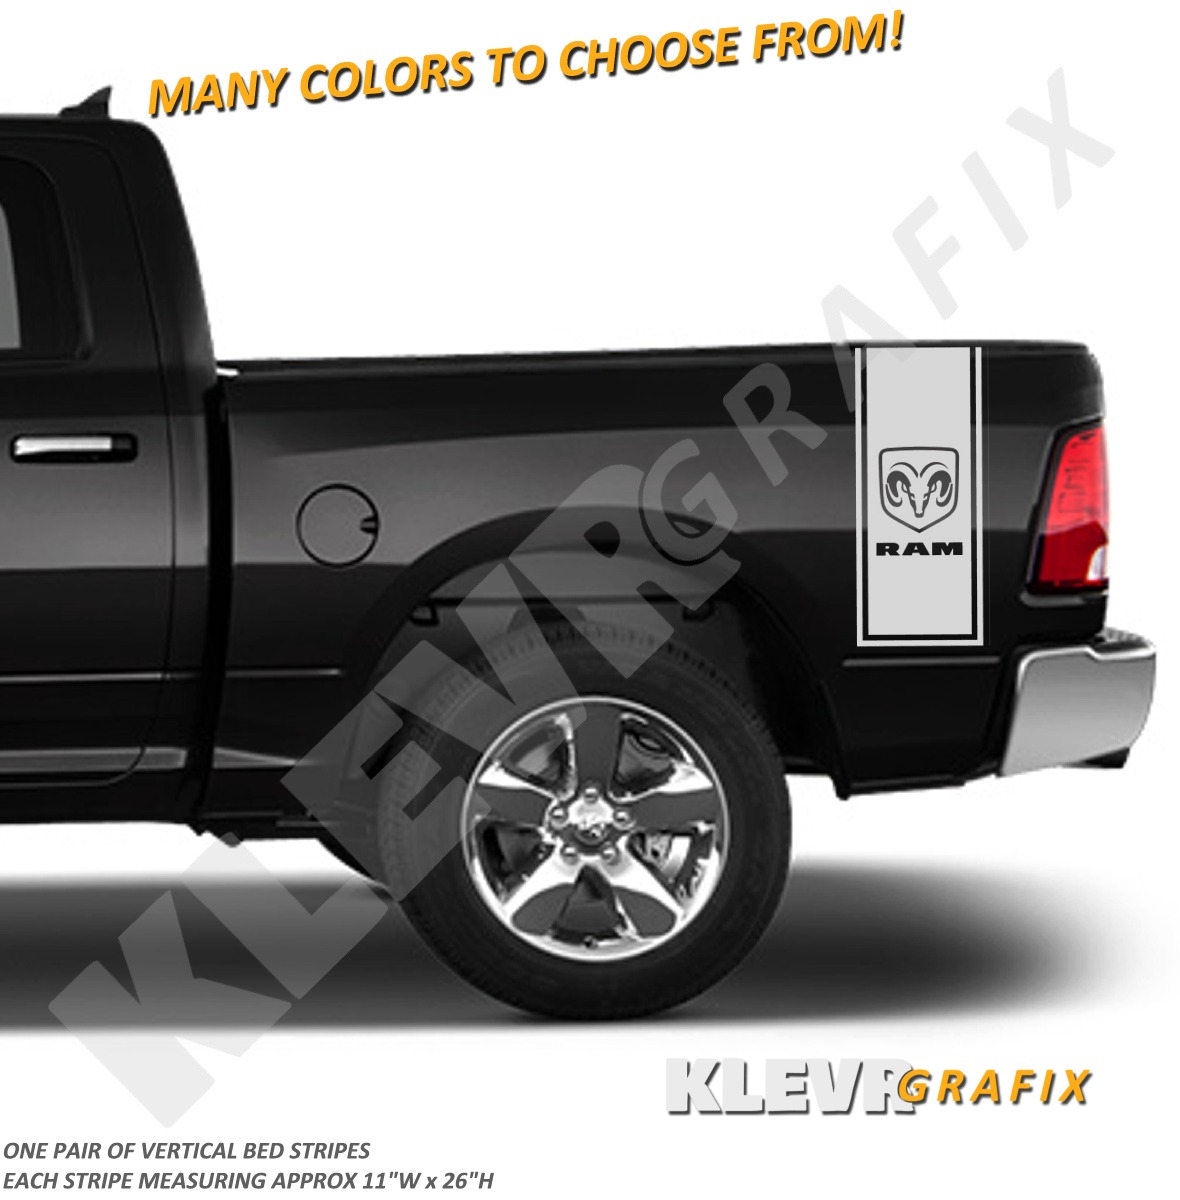 Details about ram emblem truck rear vertical half bed stripes vinyl decal graphics racing 1500